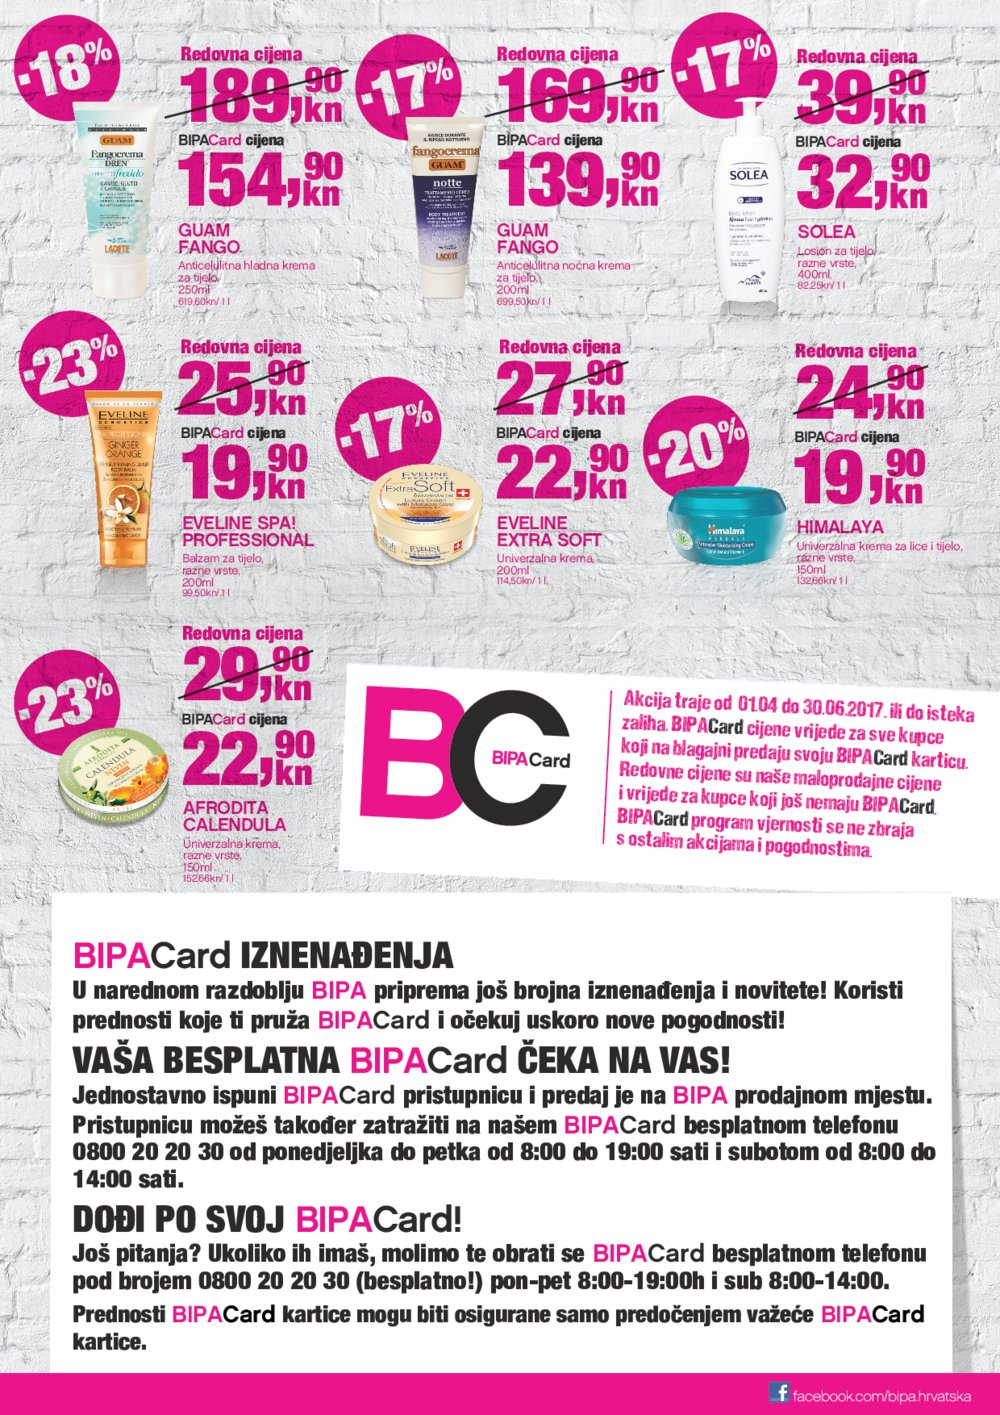 Bipa katalog Bipa Card akcija od 01.04. do 30.06.2017.